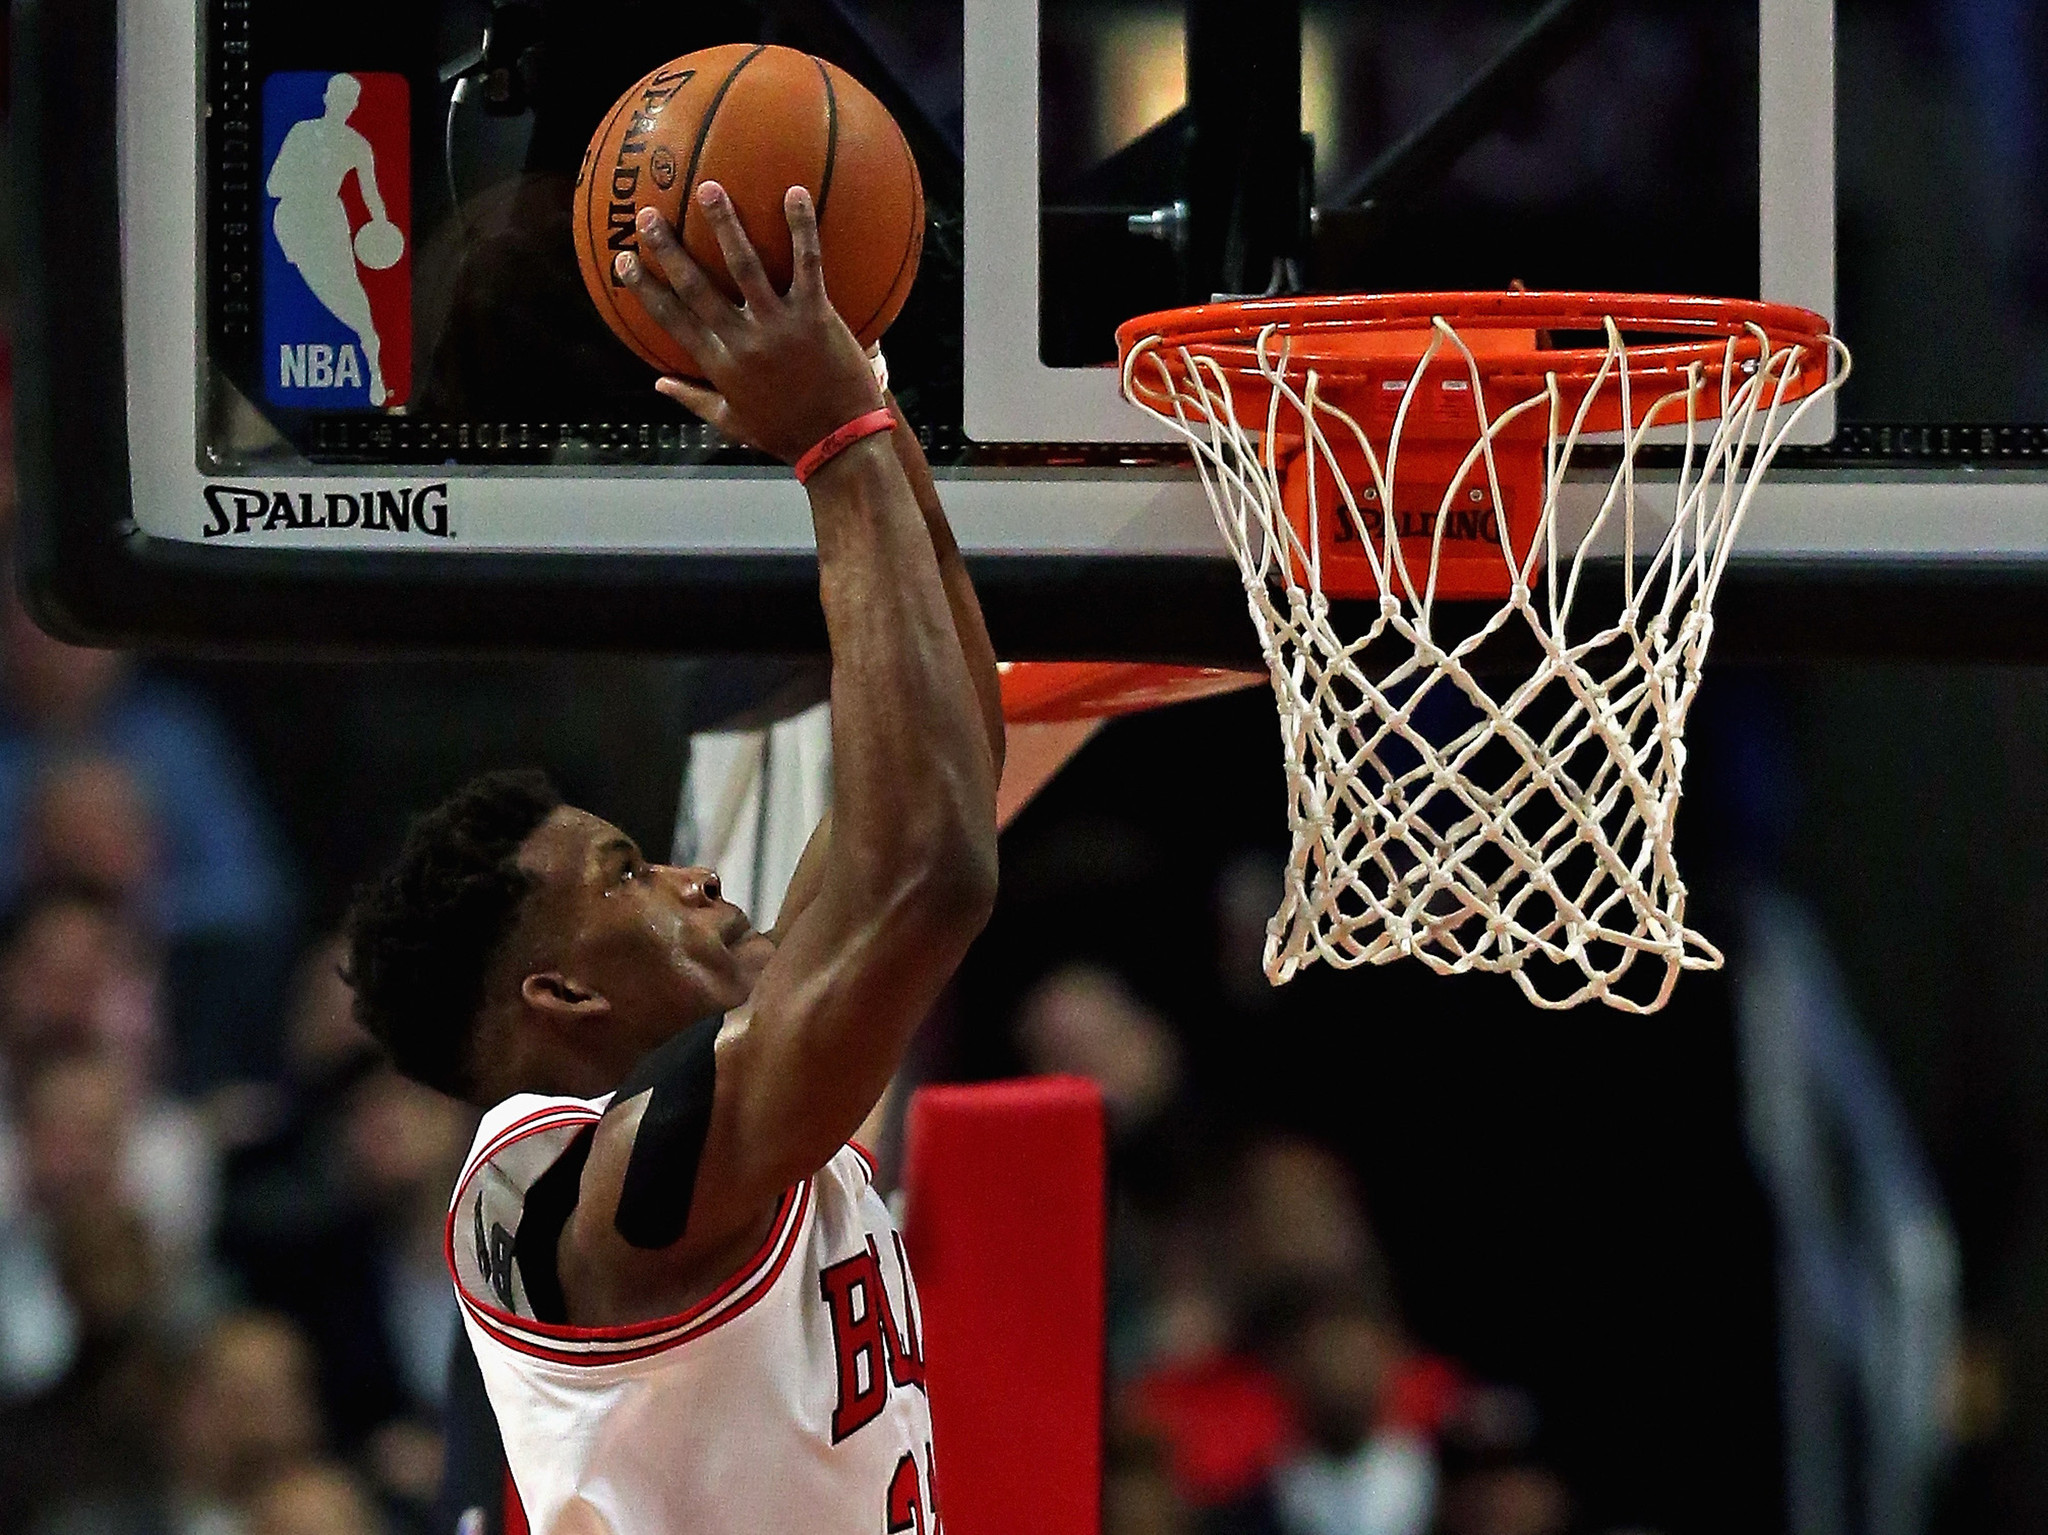 MRI confirms Jimmy Butler's strained shoulder; he's questionable for game vs. Cavs